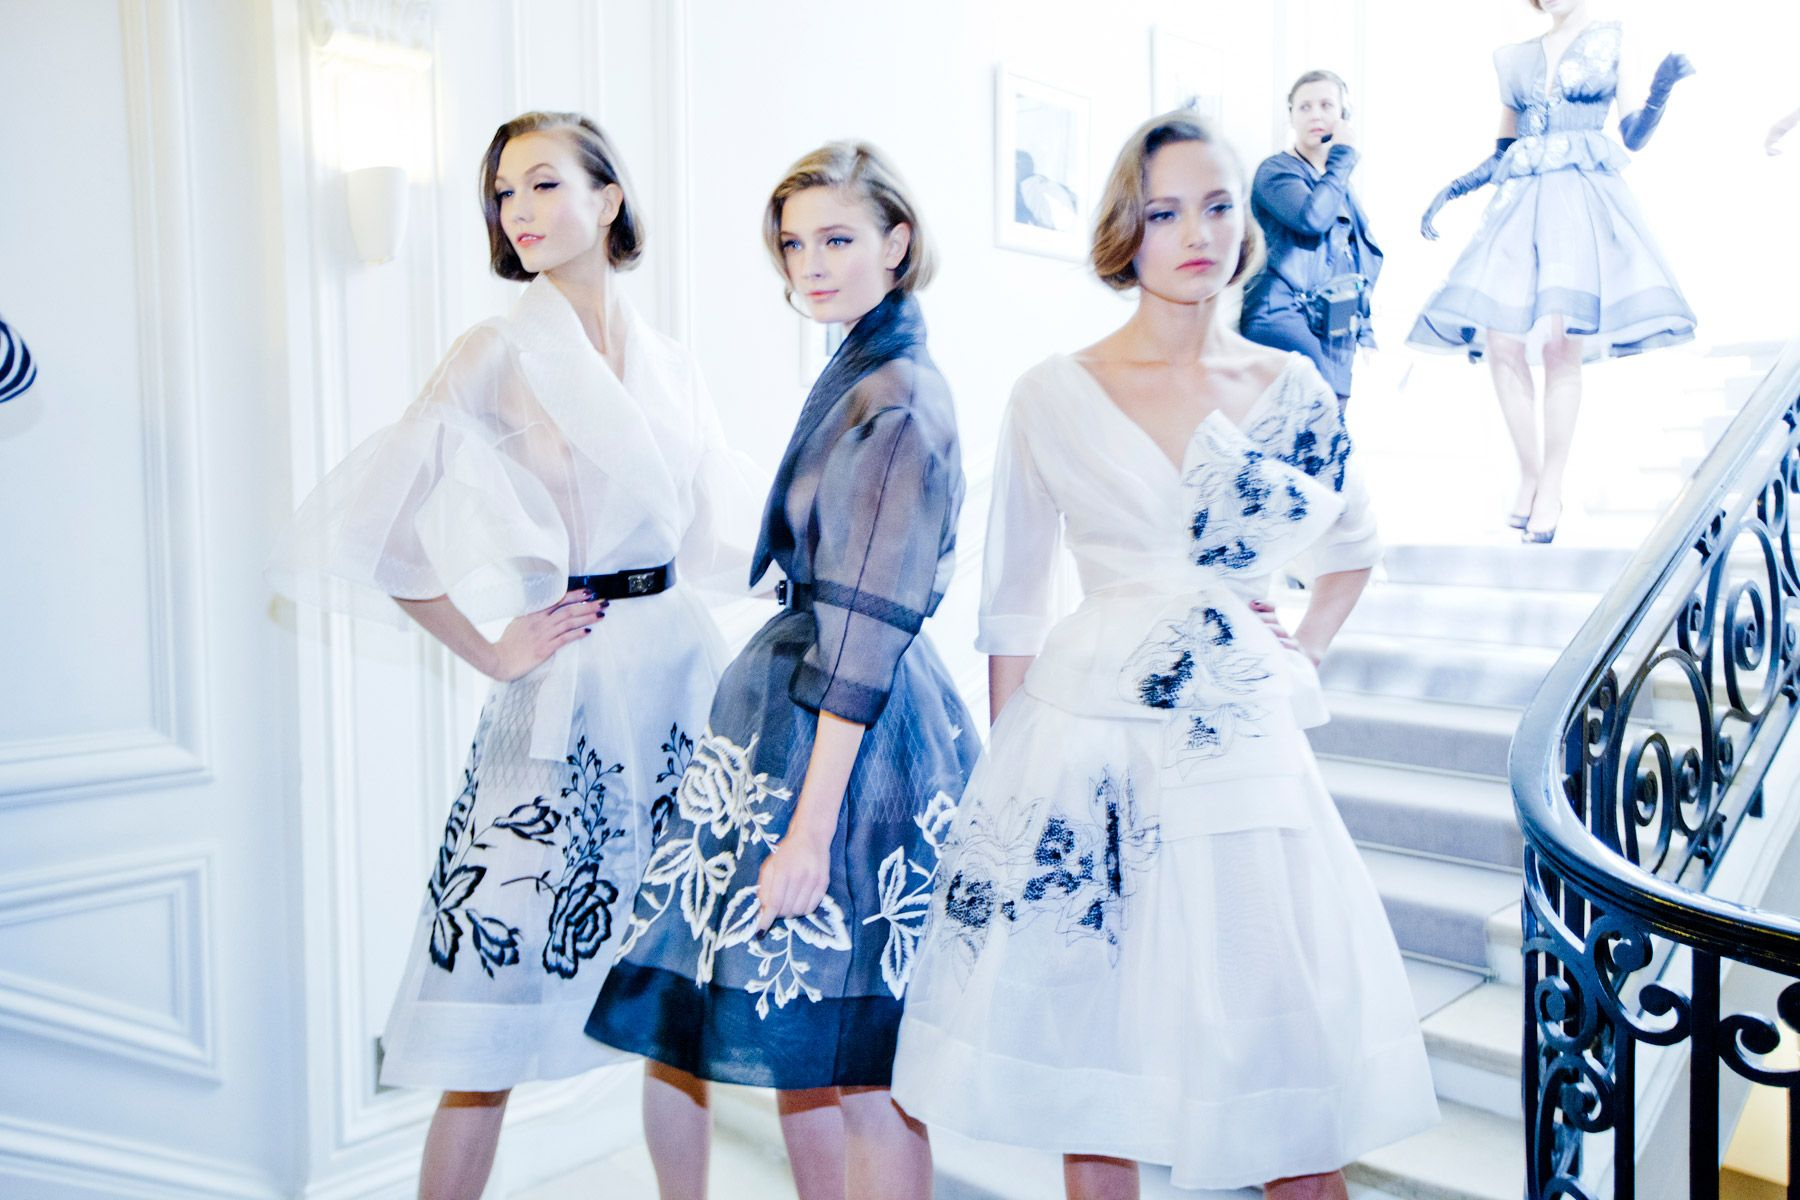 Vogueus view the best and most beautiful backstage and front row